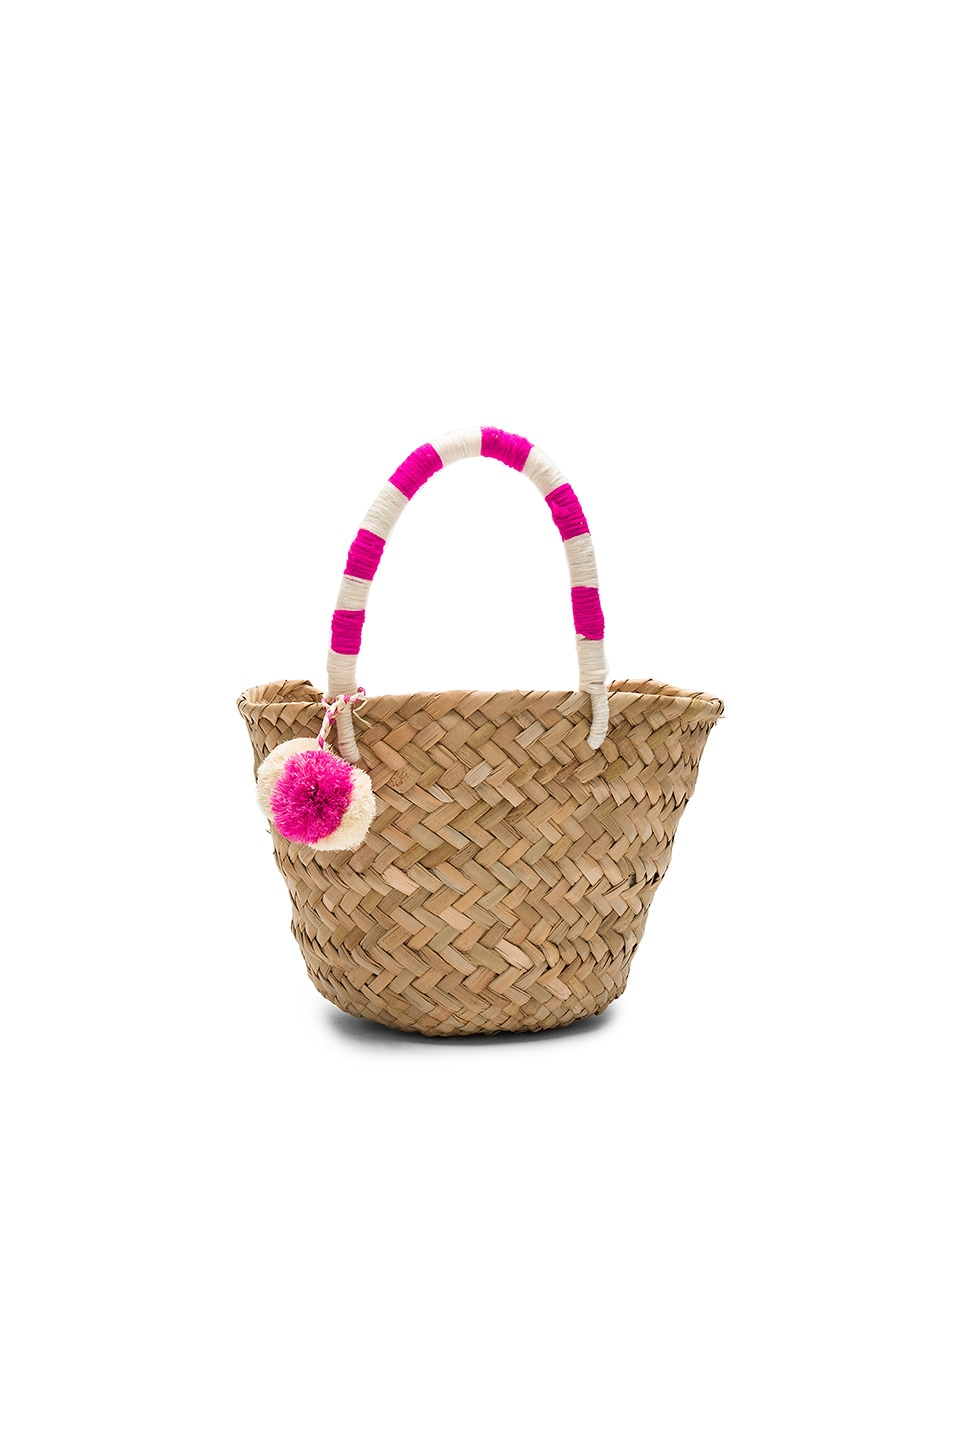 KAYU Mini St. Tropez Tote in Pink & White